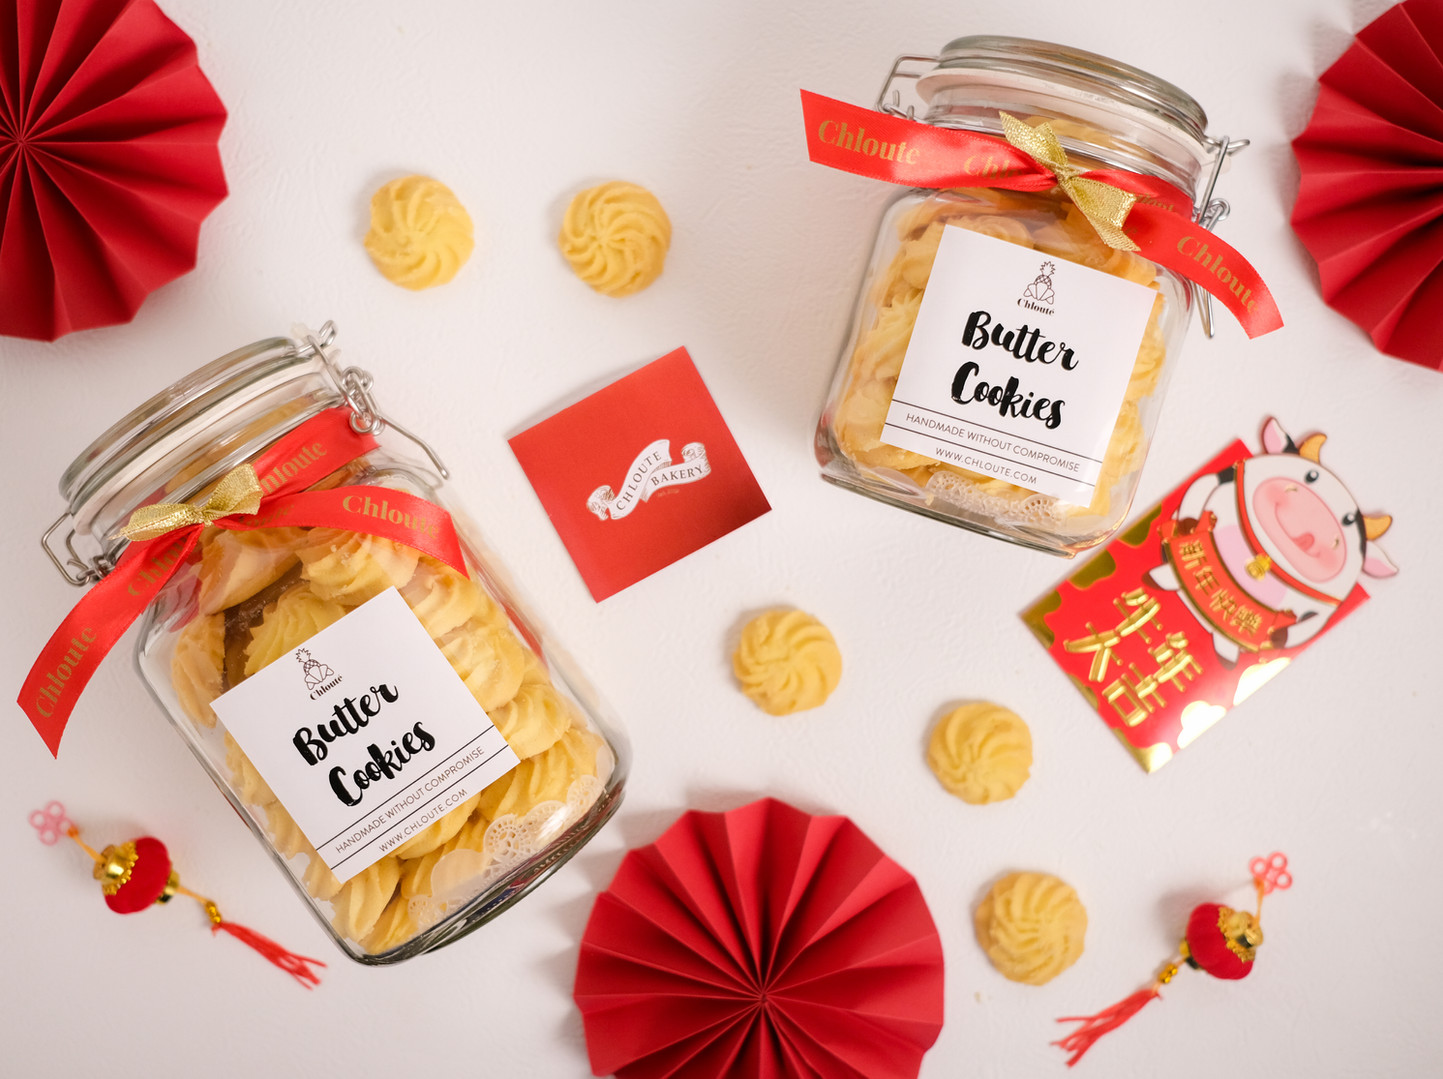 butter cookies chinese new year hamper